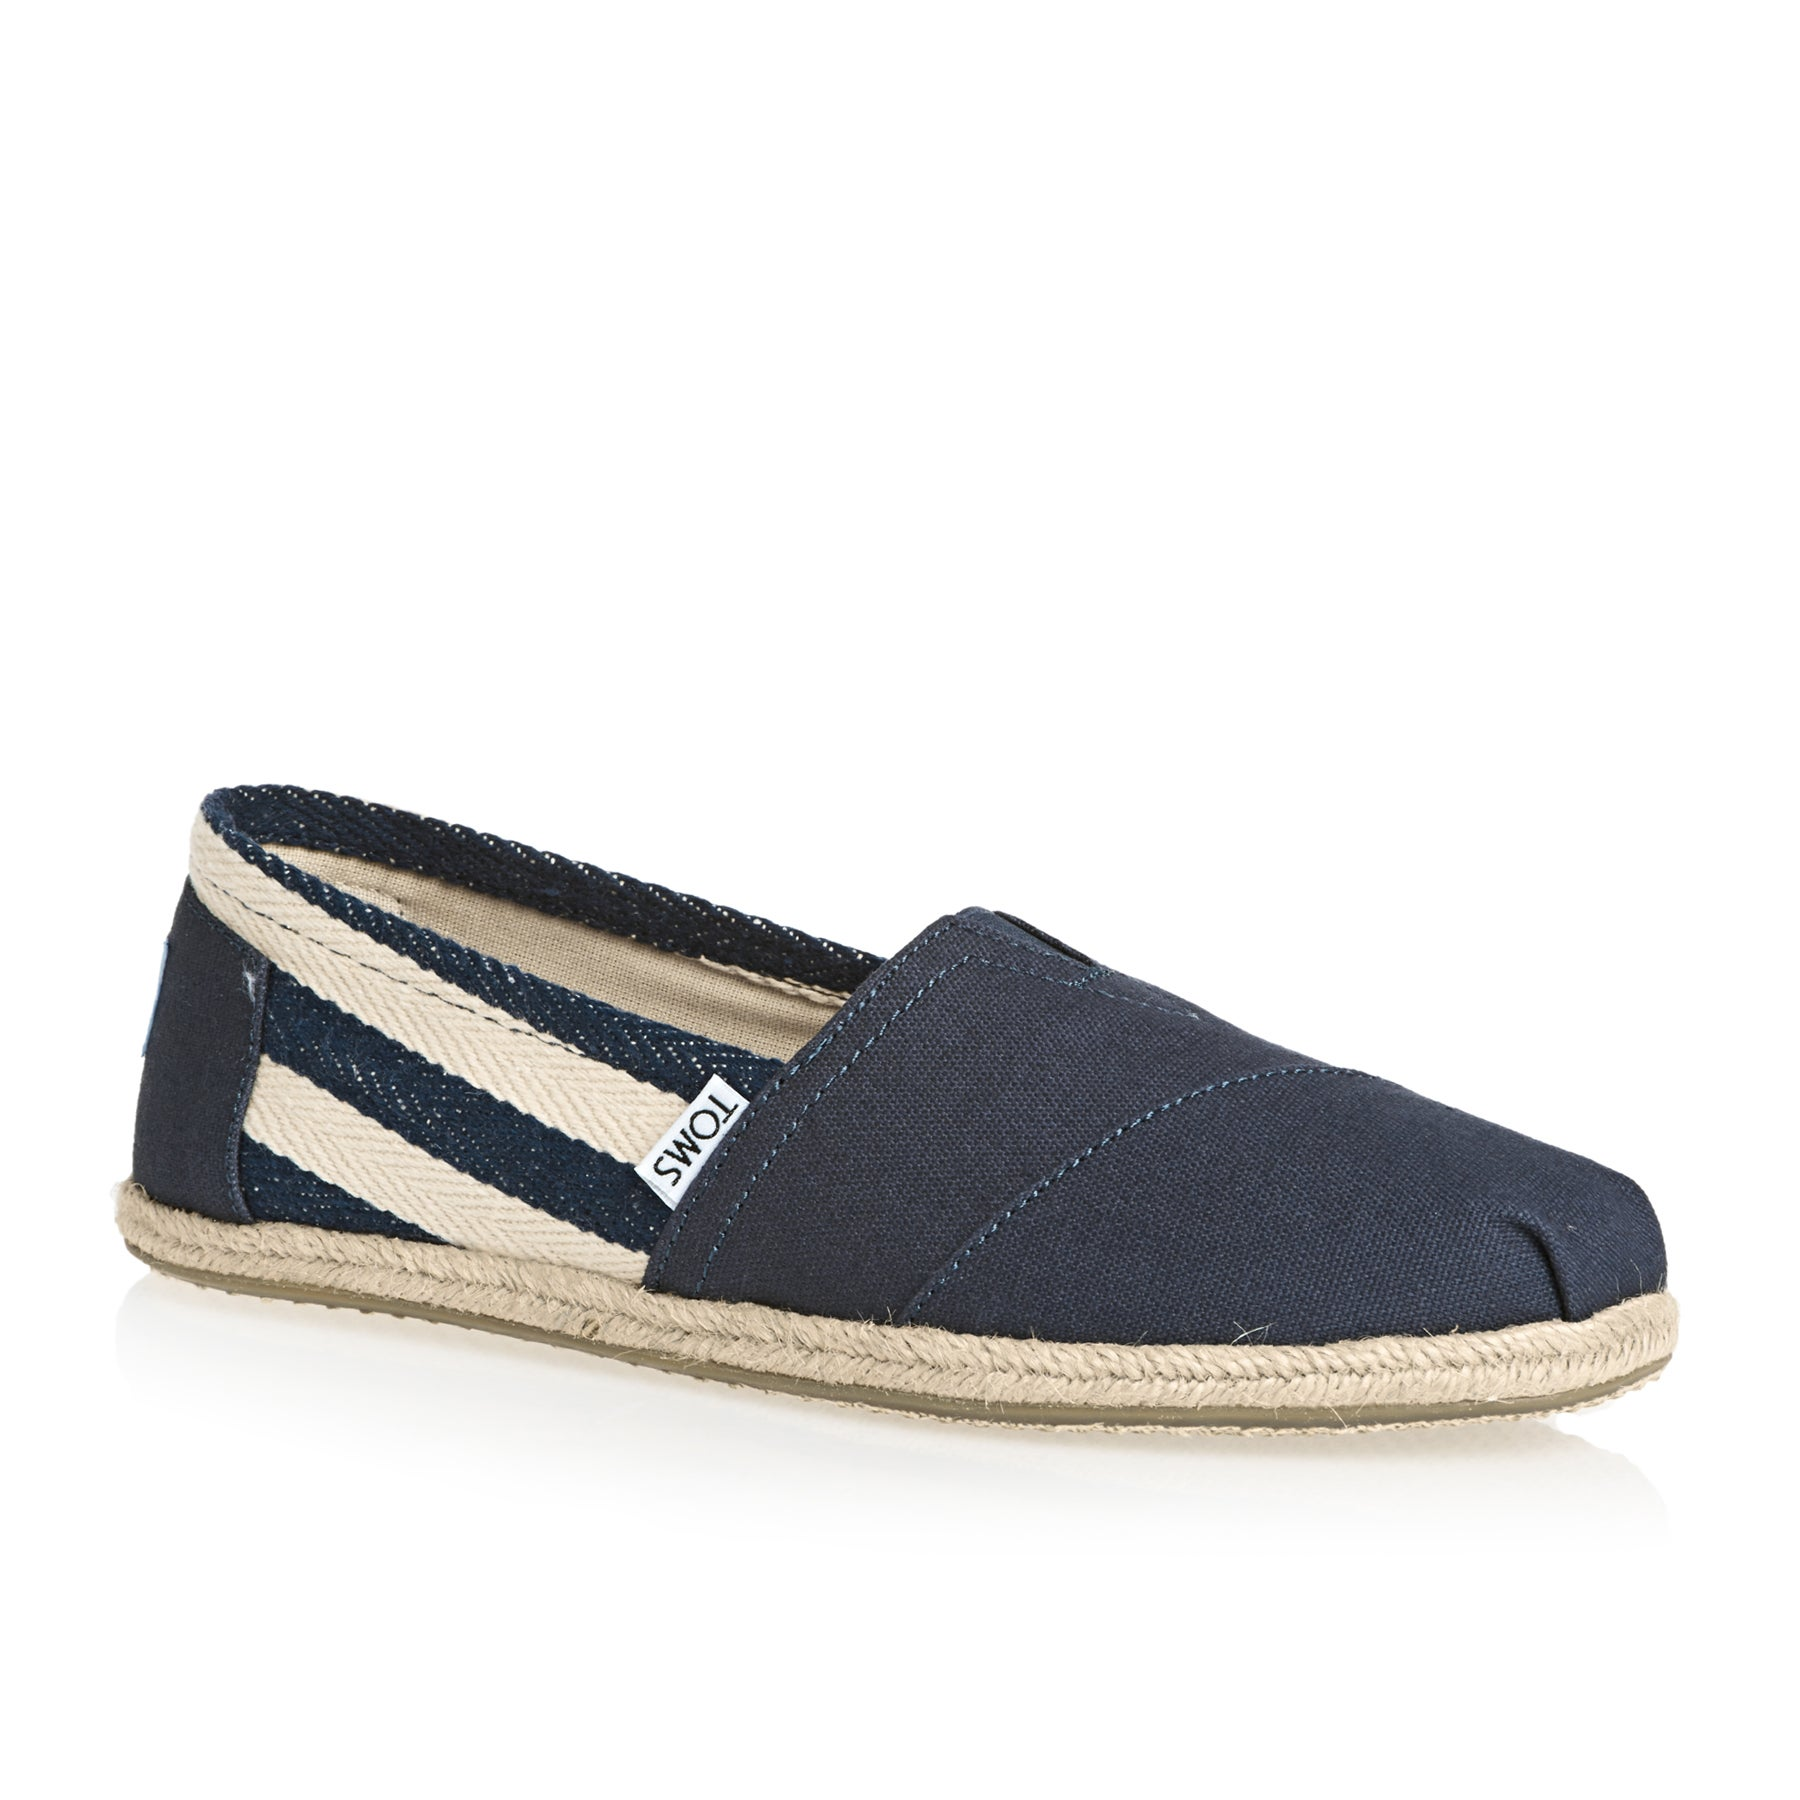 a15c881fc0c Toms University Classic Alpargata Womens Slip On Shoes available ...